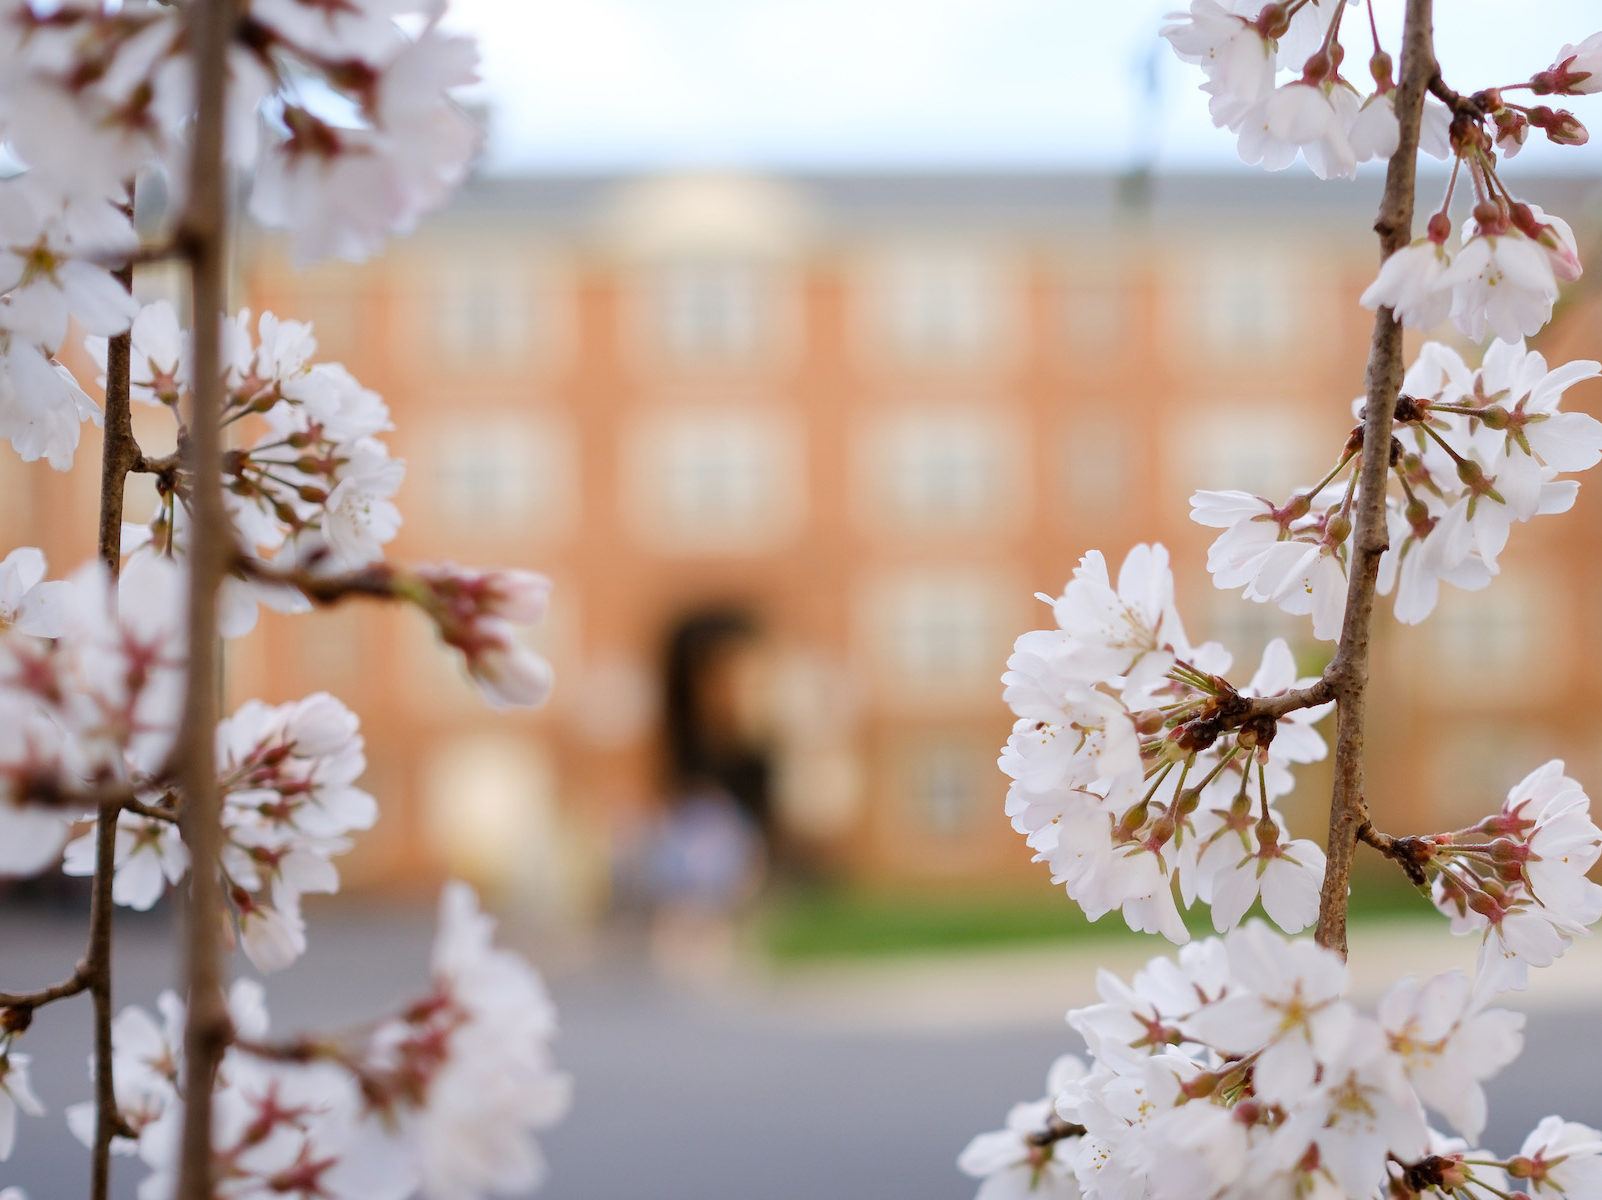 Spring blossoms outside of an entrance to Taylor residence hall